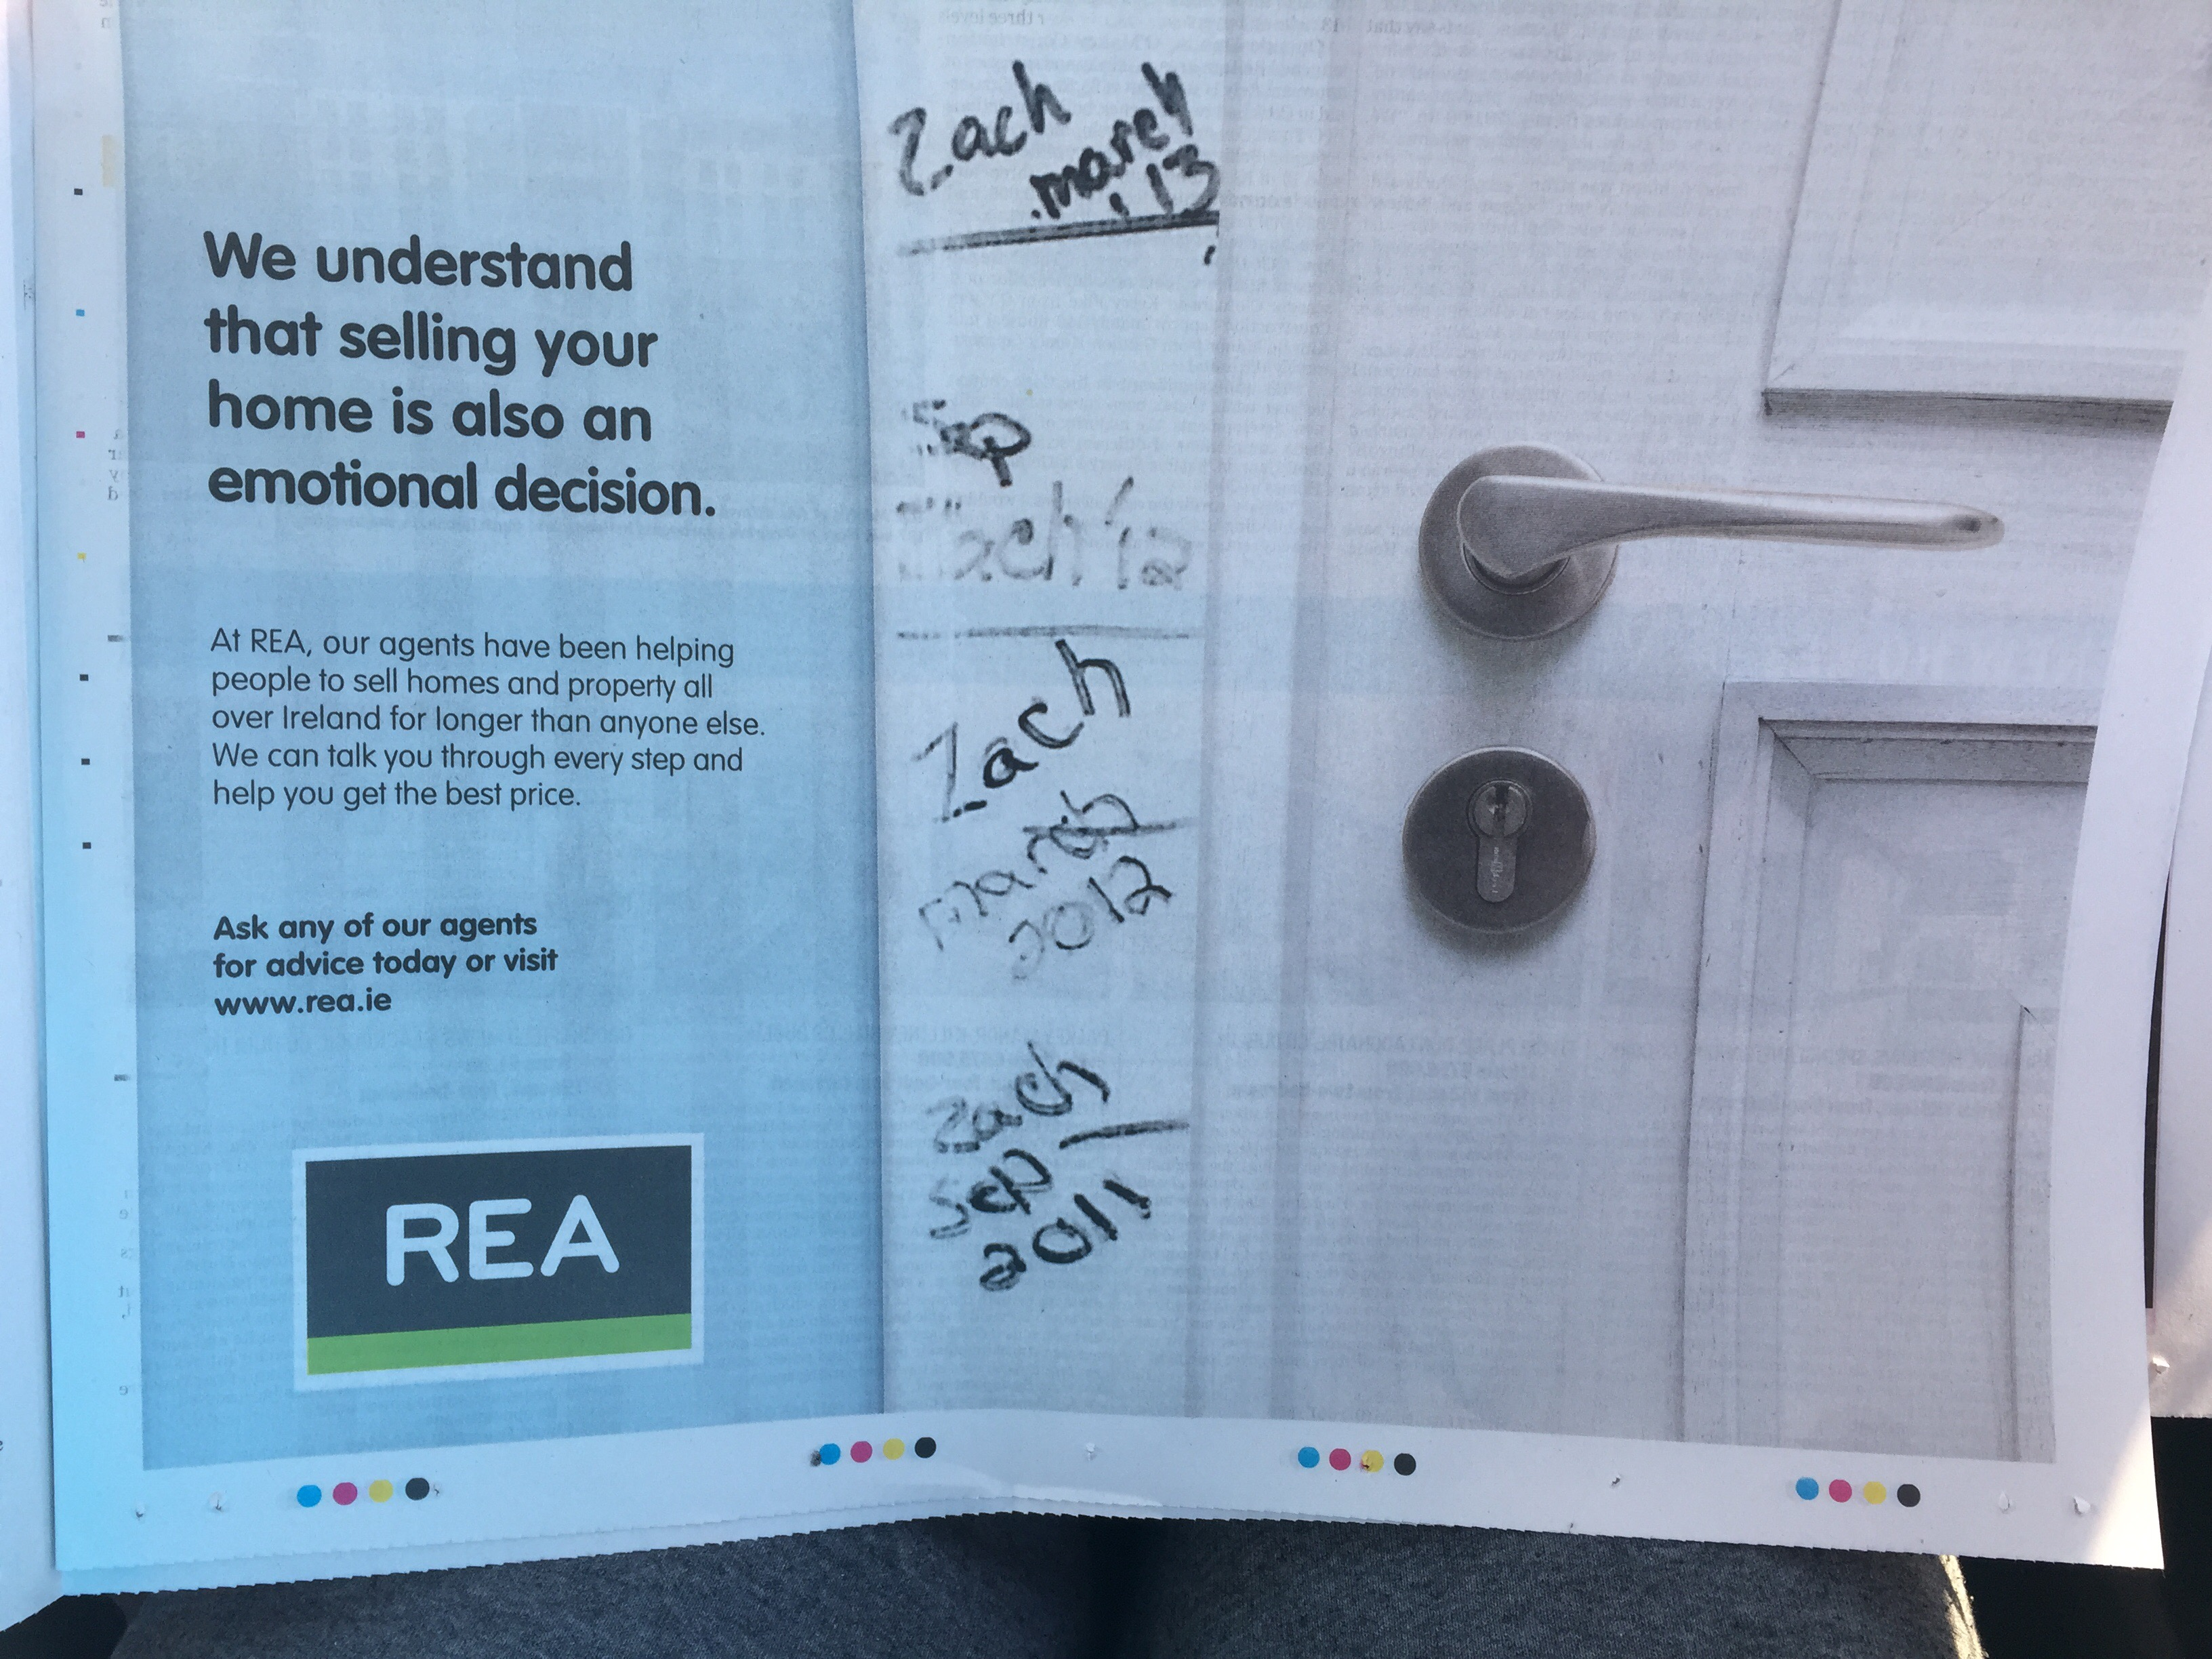 REA – We understand that selling your home  is also an emotional decision